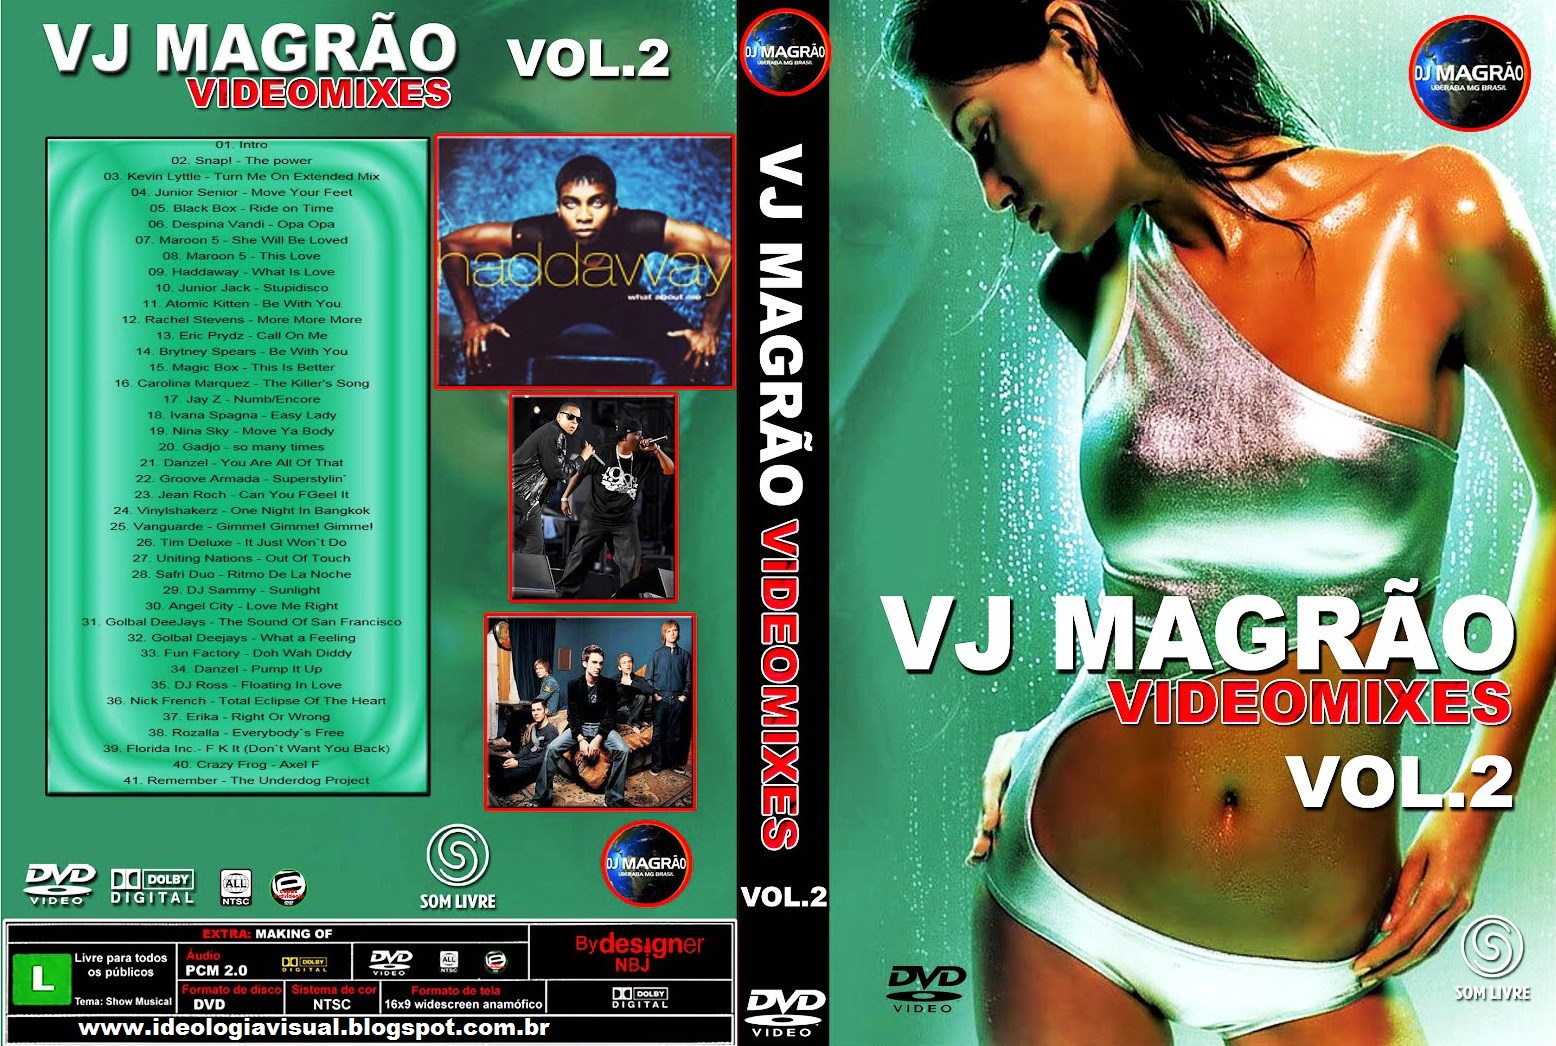 dj magrao 2012